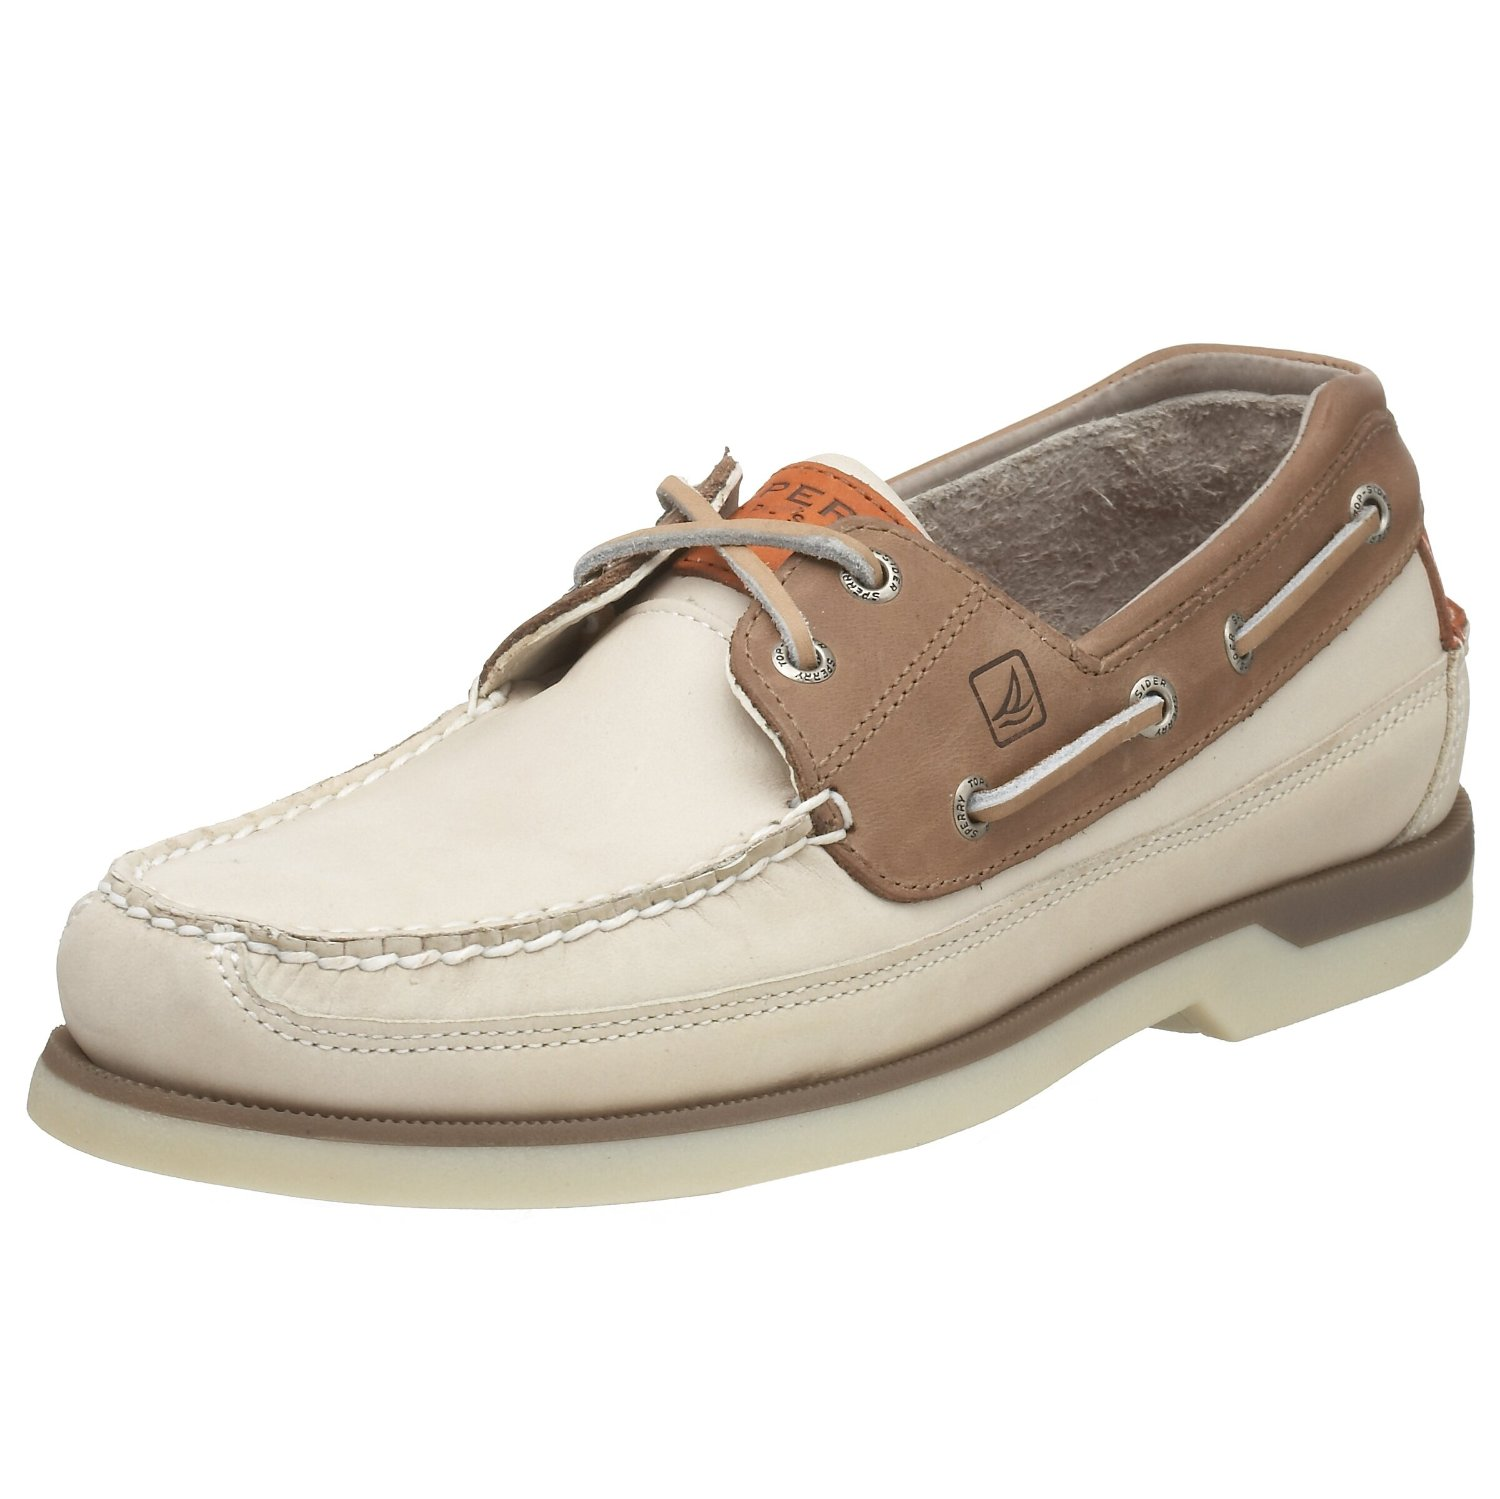 Sperry Top Sider Men S Mako  Eye Boat Shoe Oyster Taupe